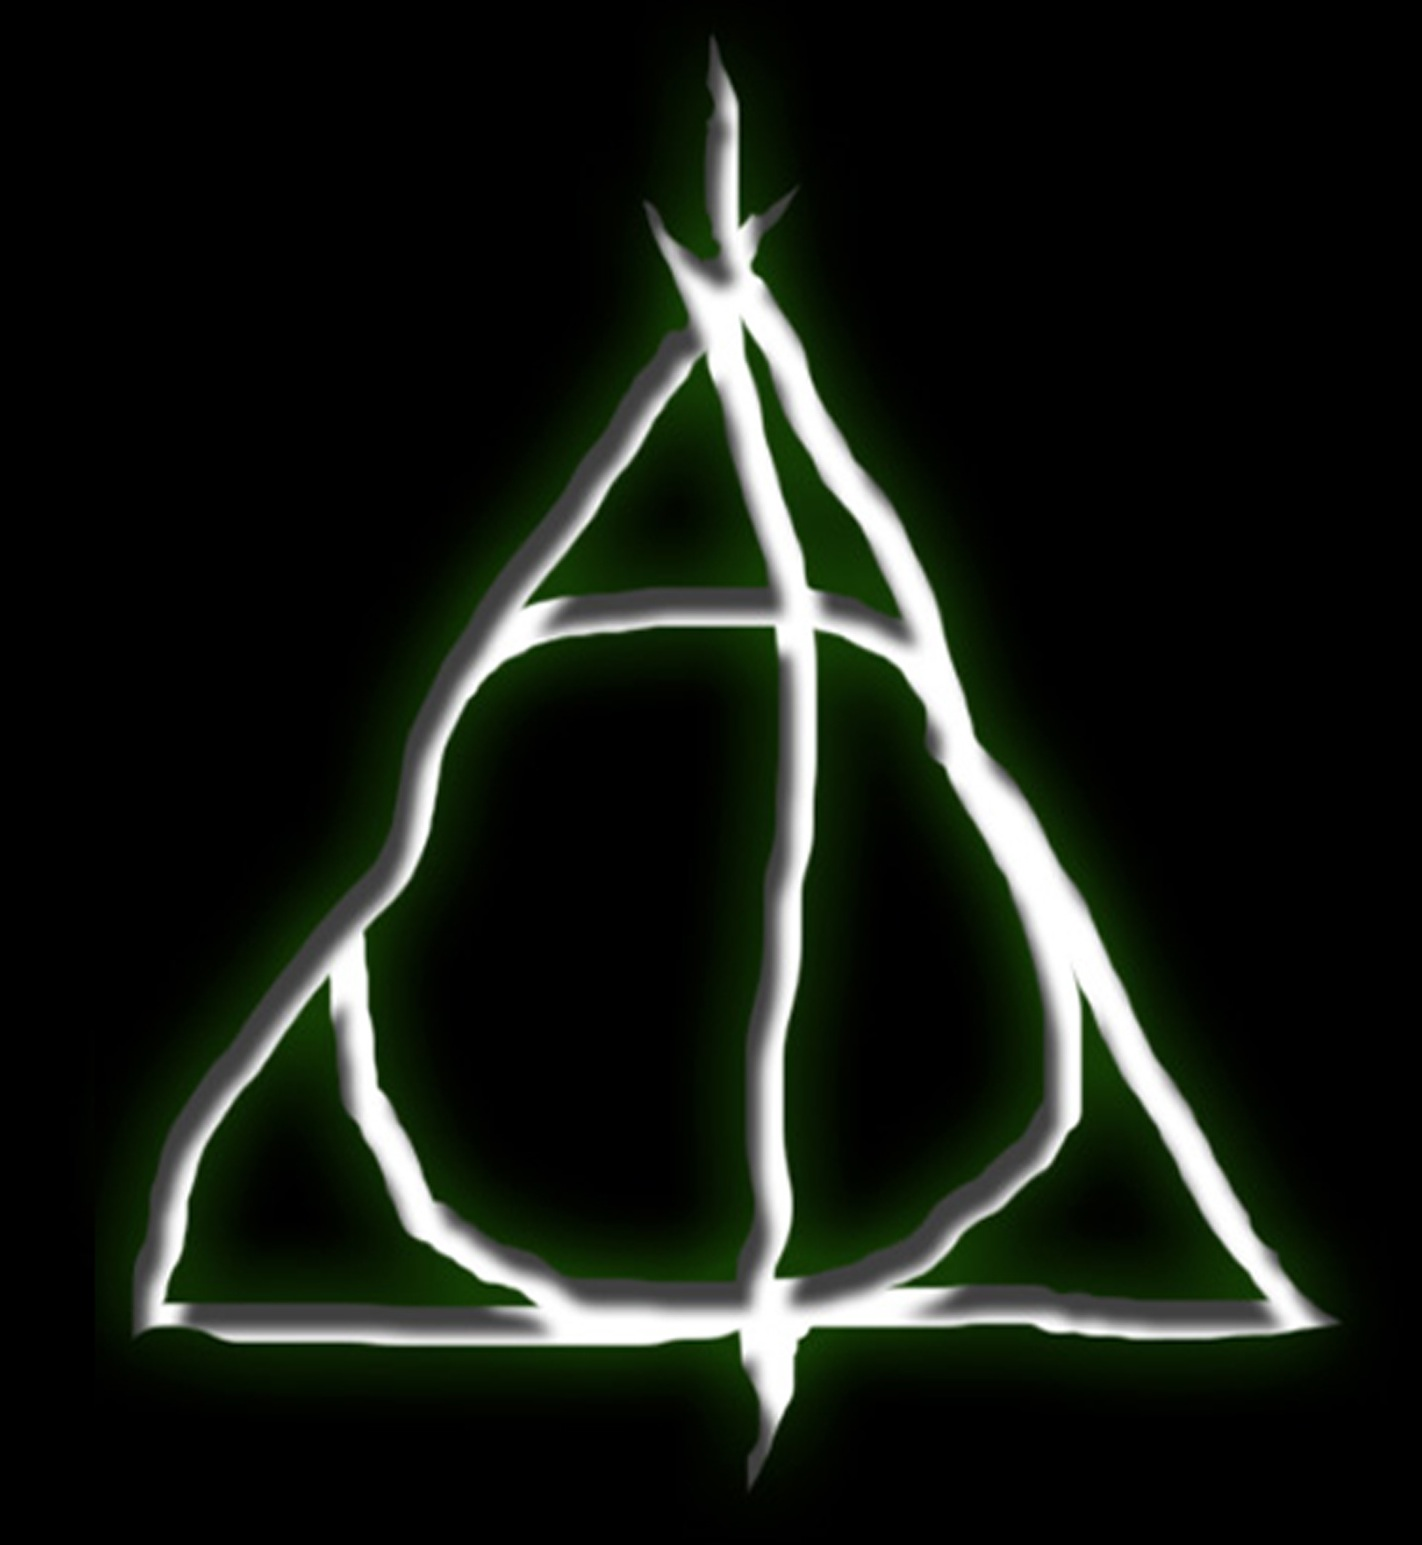 harry potter the deathly hallows images deathly hallows symbol hd